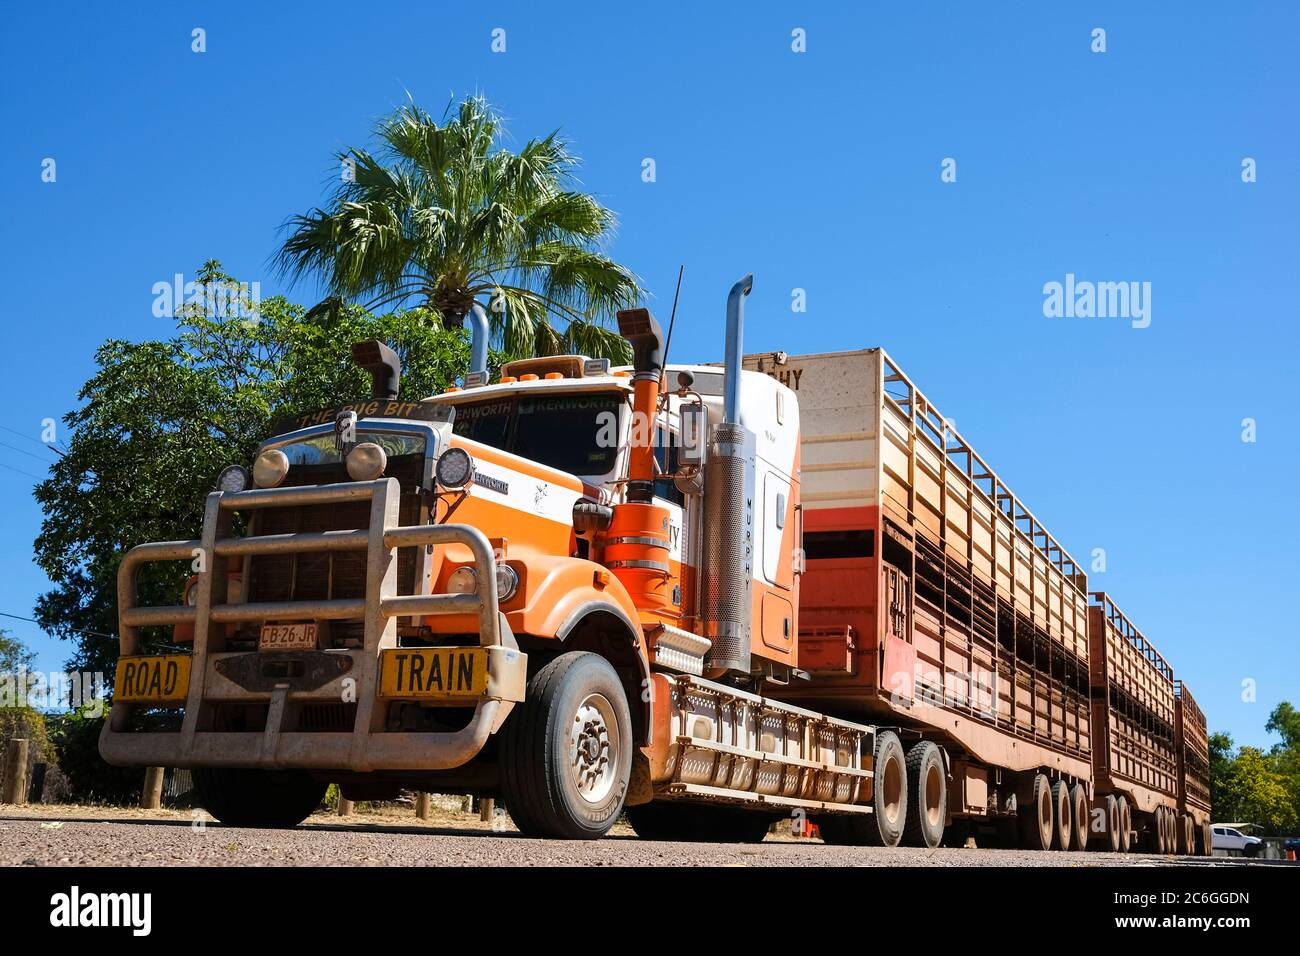 a-kenworth-road-train-truck-parked-on-th